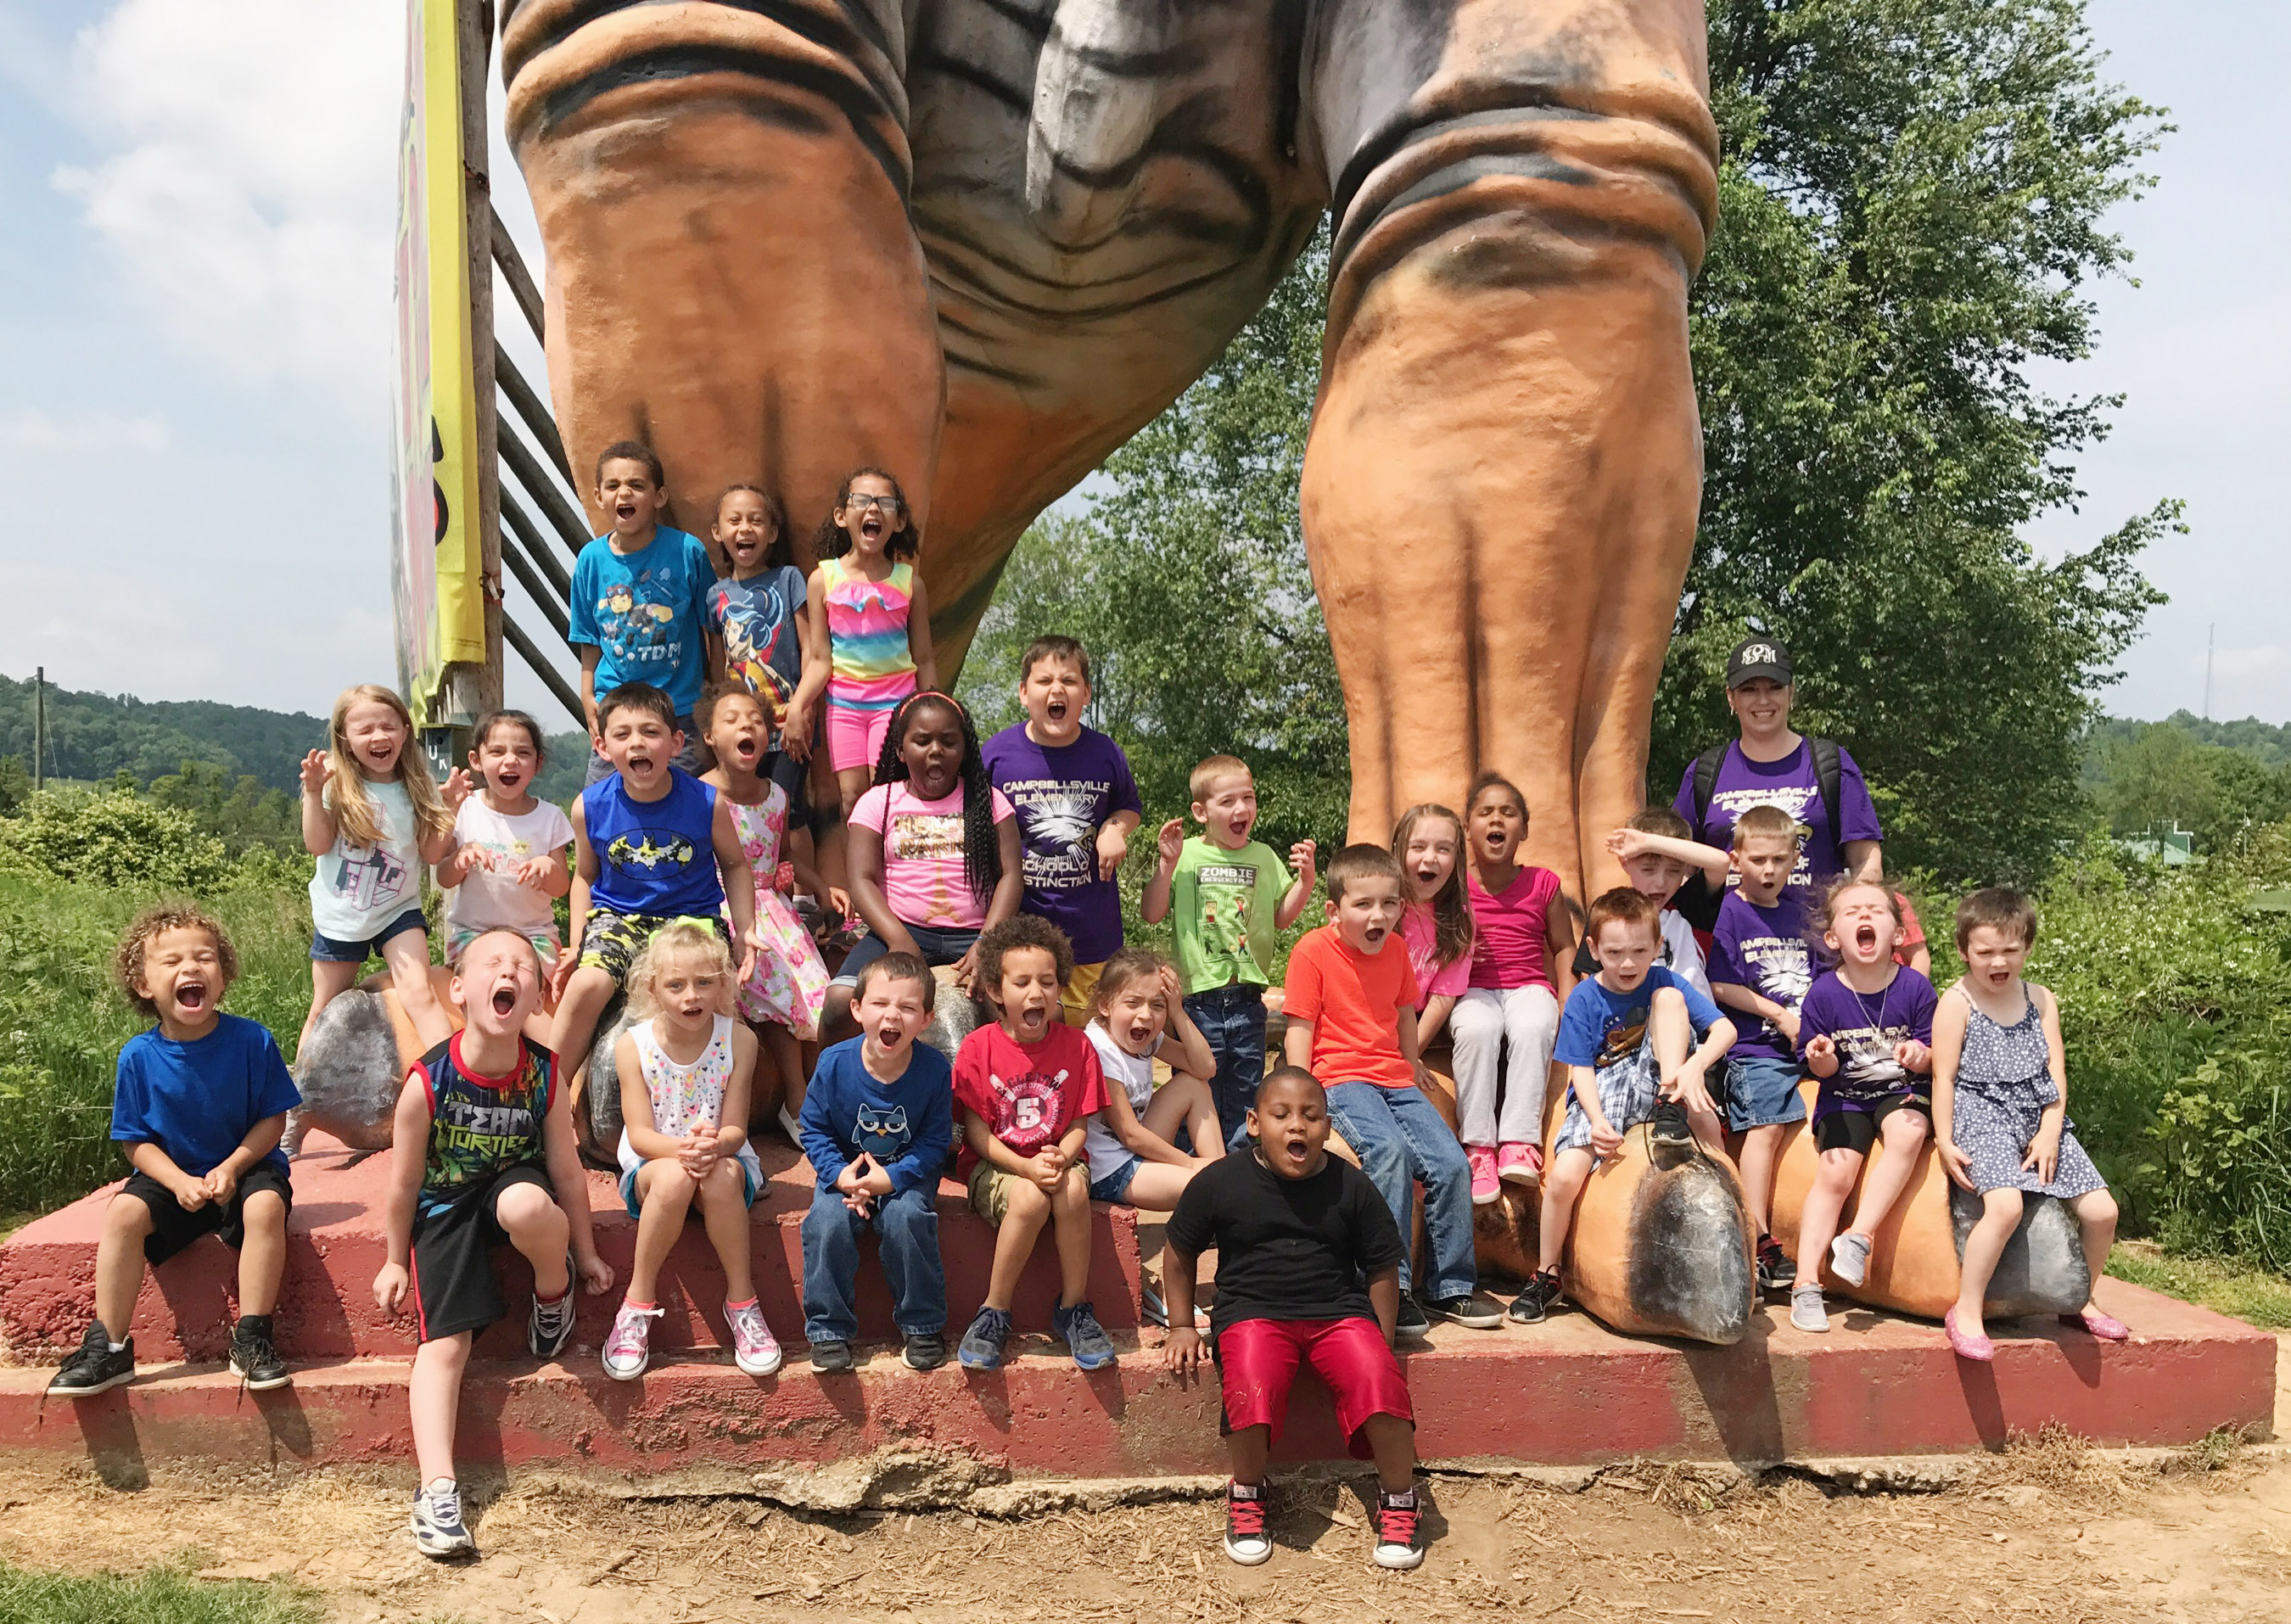 CES kindergarteners in Nikki Price's class pose for a photo at Dinosaur World.